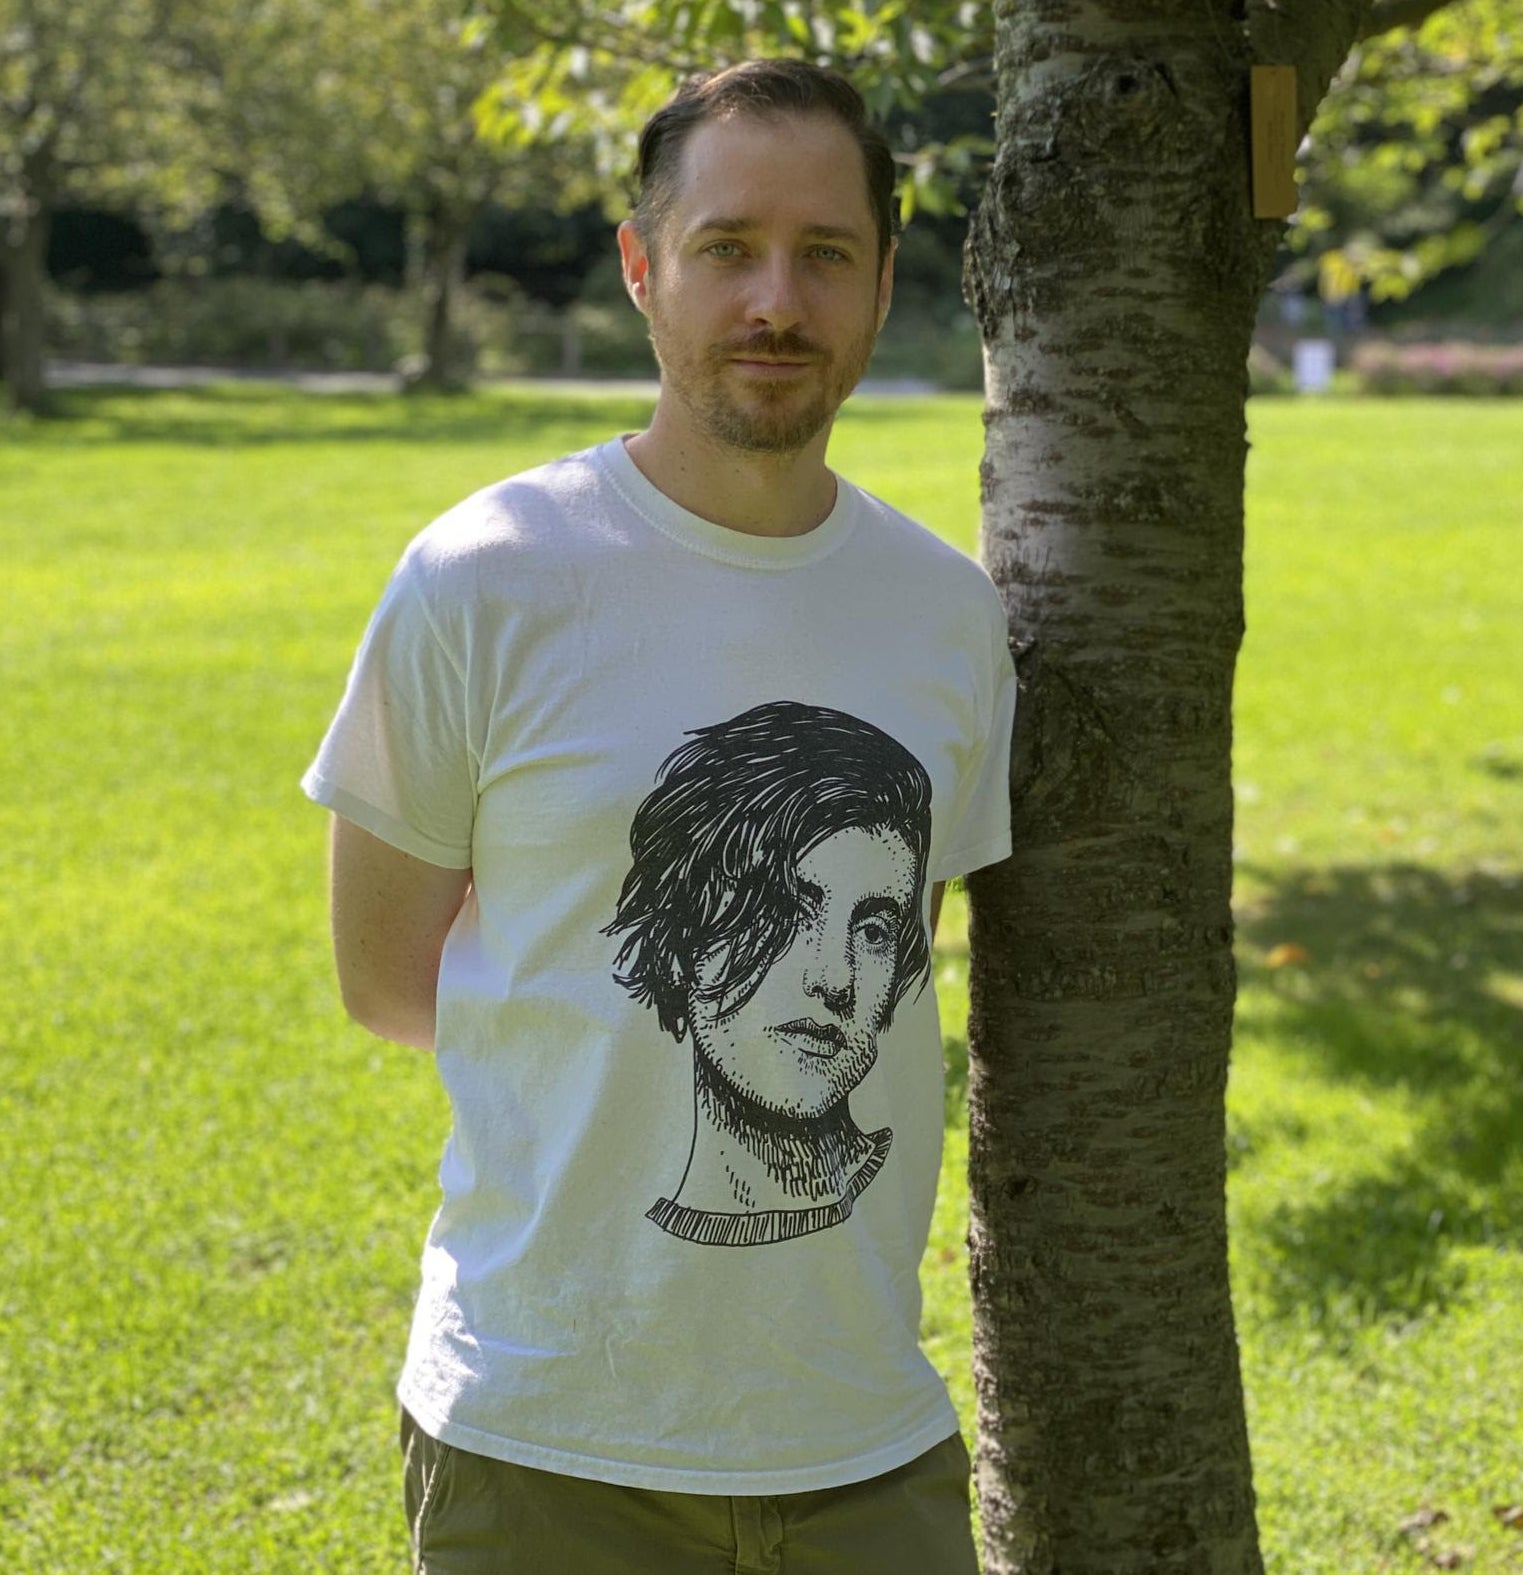 john wearing a t-shirt printed with an illustration of Justine Frischmann